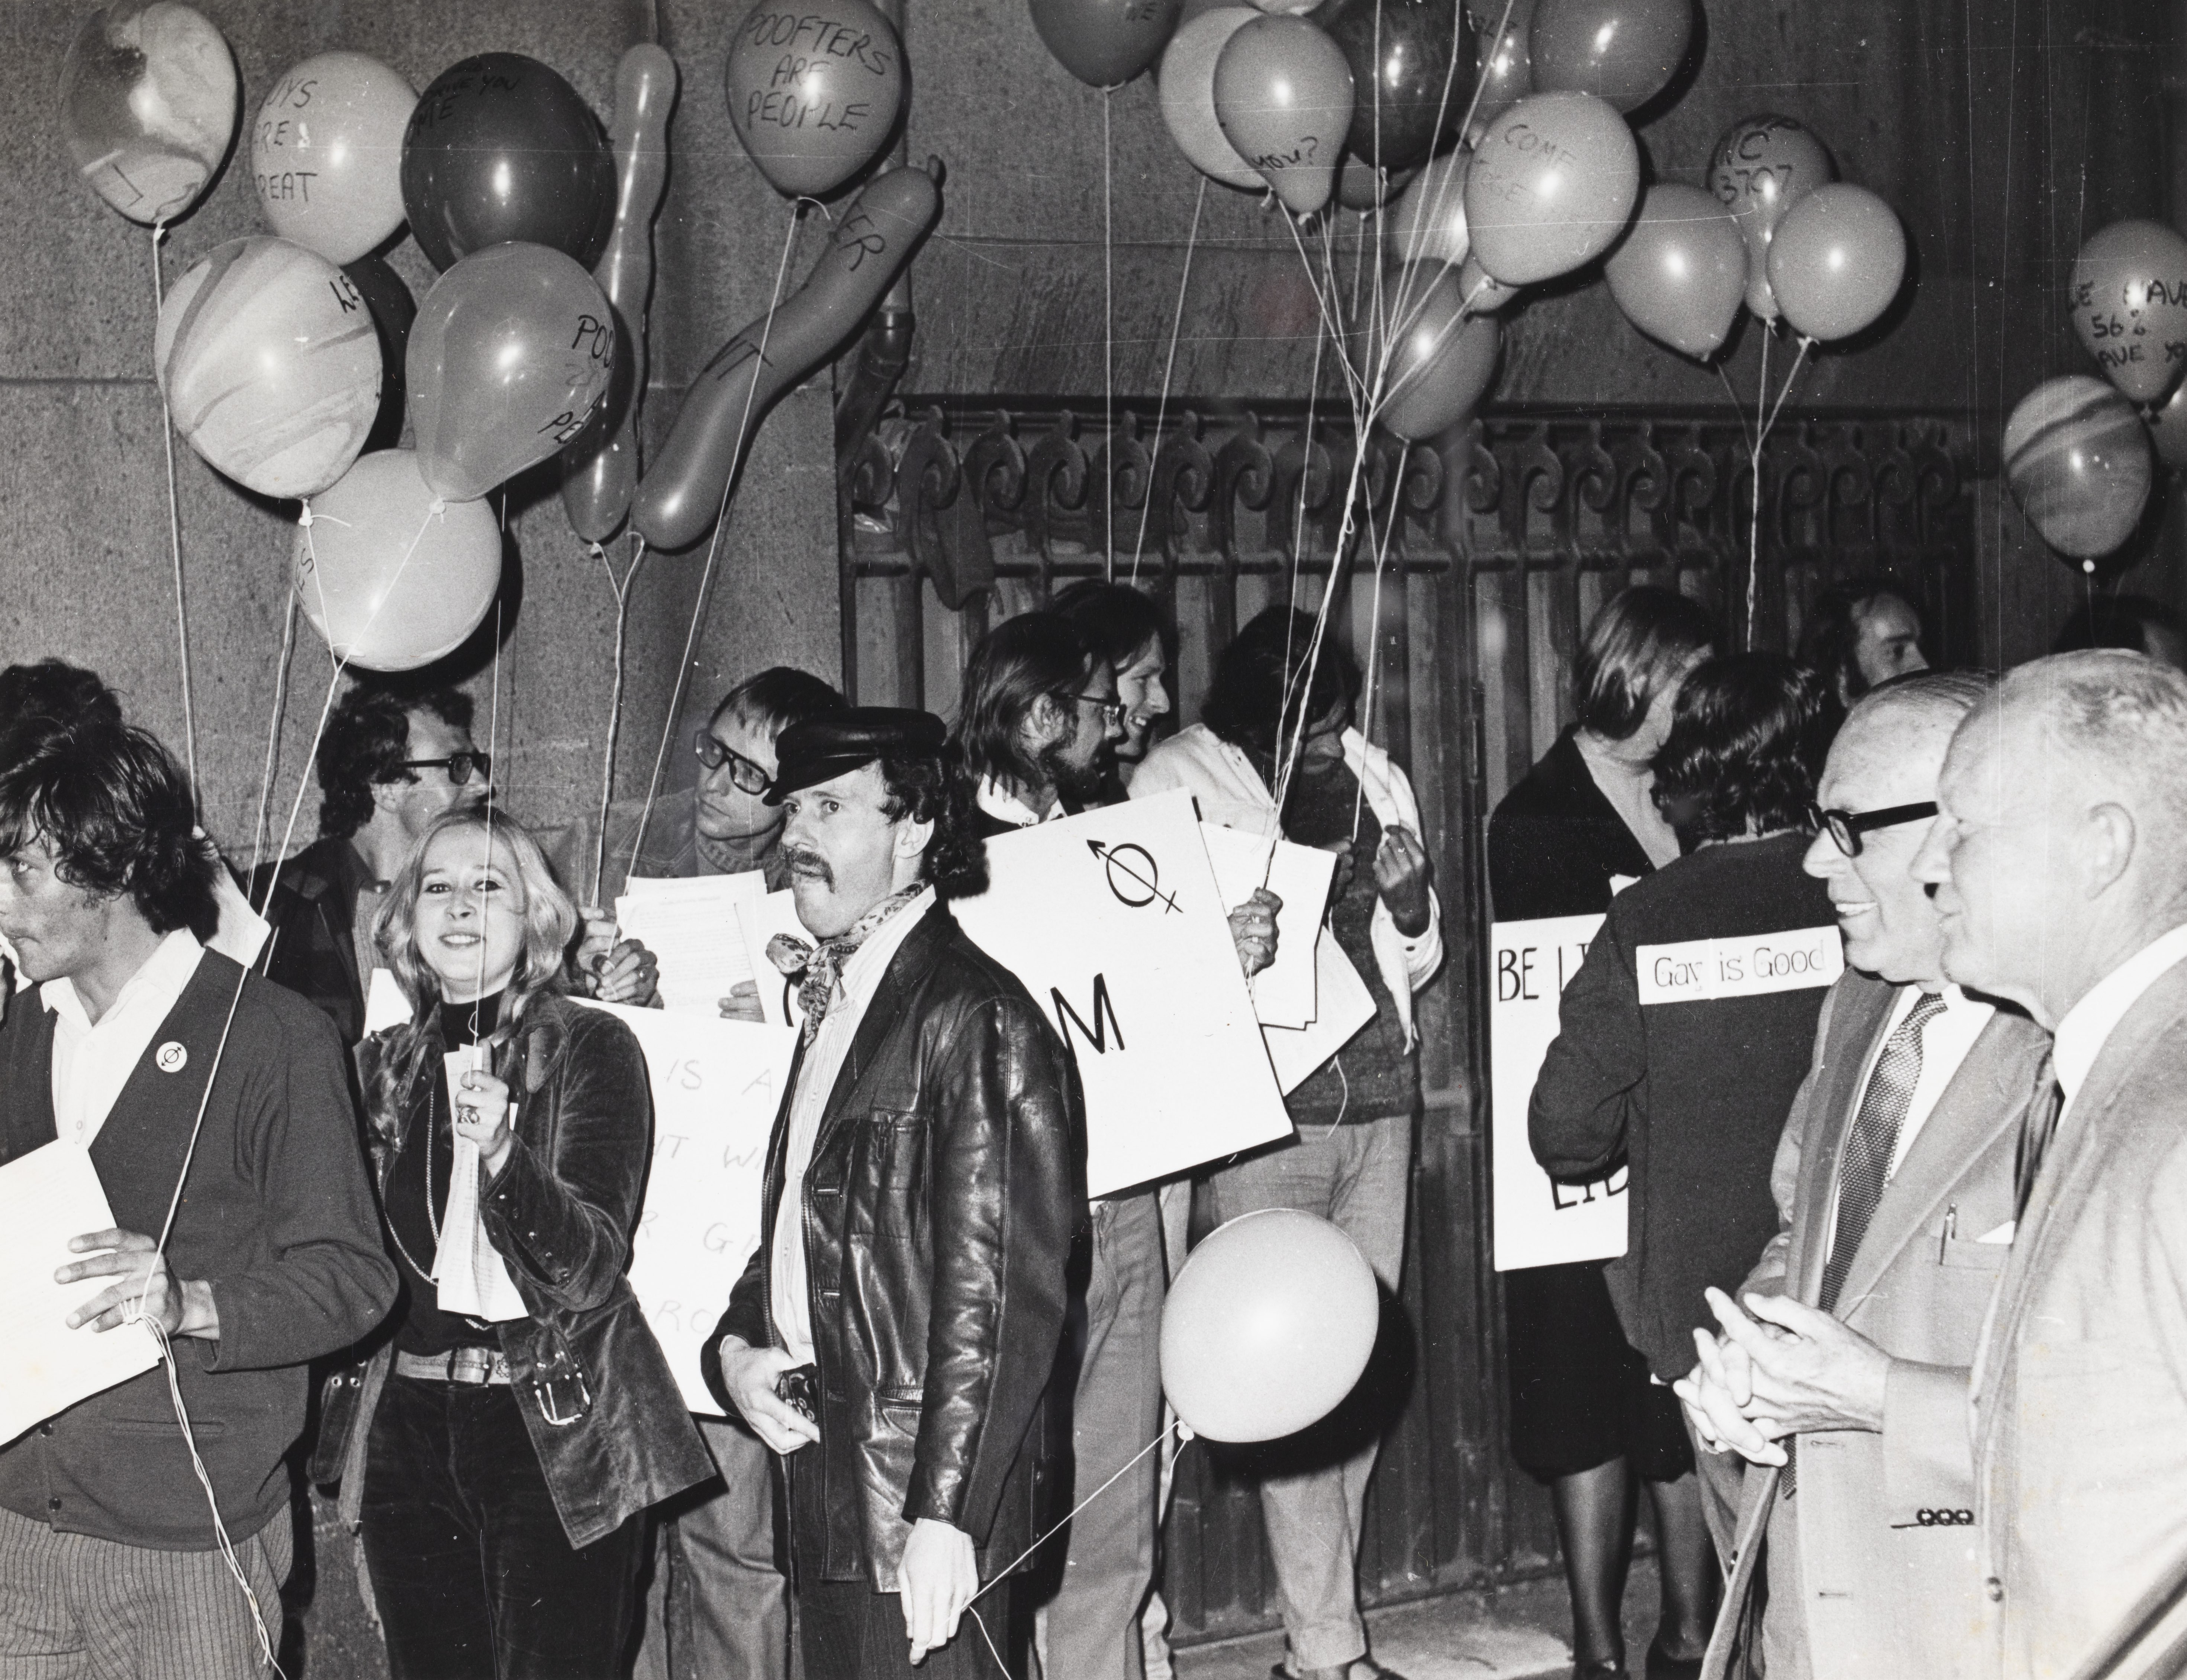 Lesbians, Gay men and their supporters at CAMP Inc. demonstration outside NSW Liberal Party Headquarters, Ash St, Sydney. LEX WATSON COLLECTION